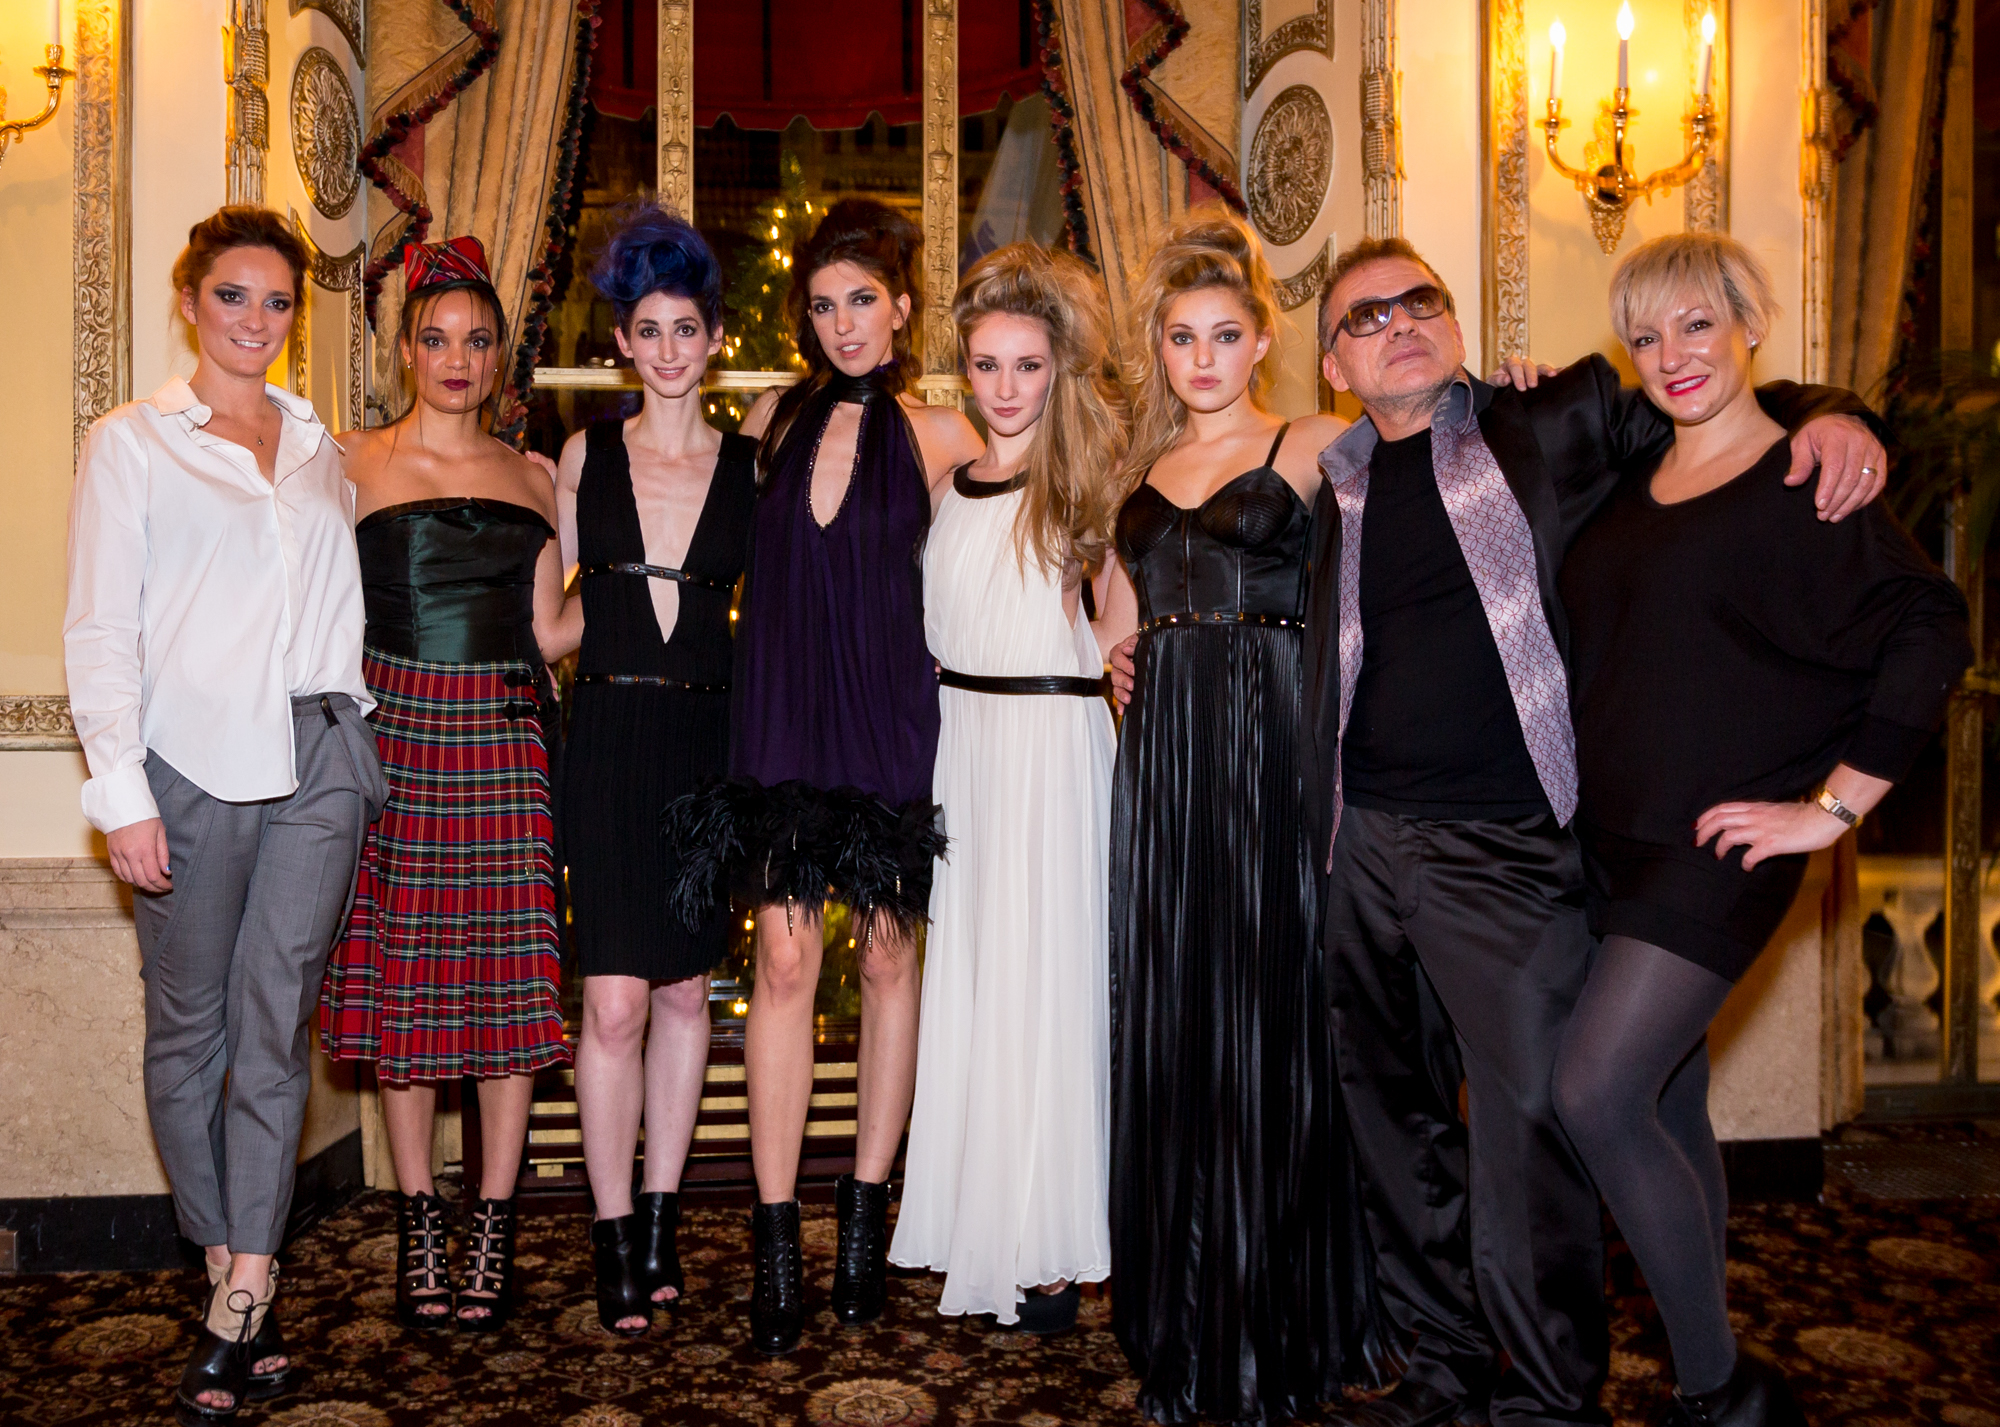 Left, Chynna Pope beside models and artists including Geena Matuson (@geenamatuson) in 'Scene&Style' fashion event. Right, Charles Maksou of Che Maksou. Image by CDA Media.